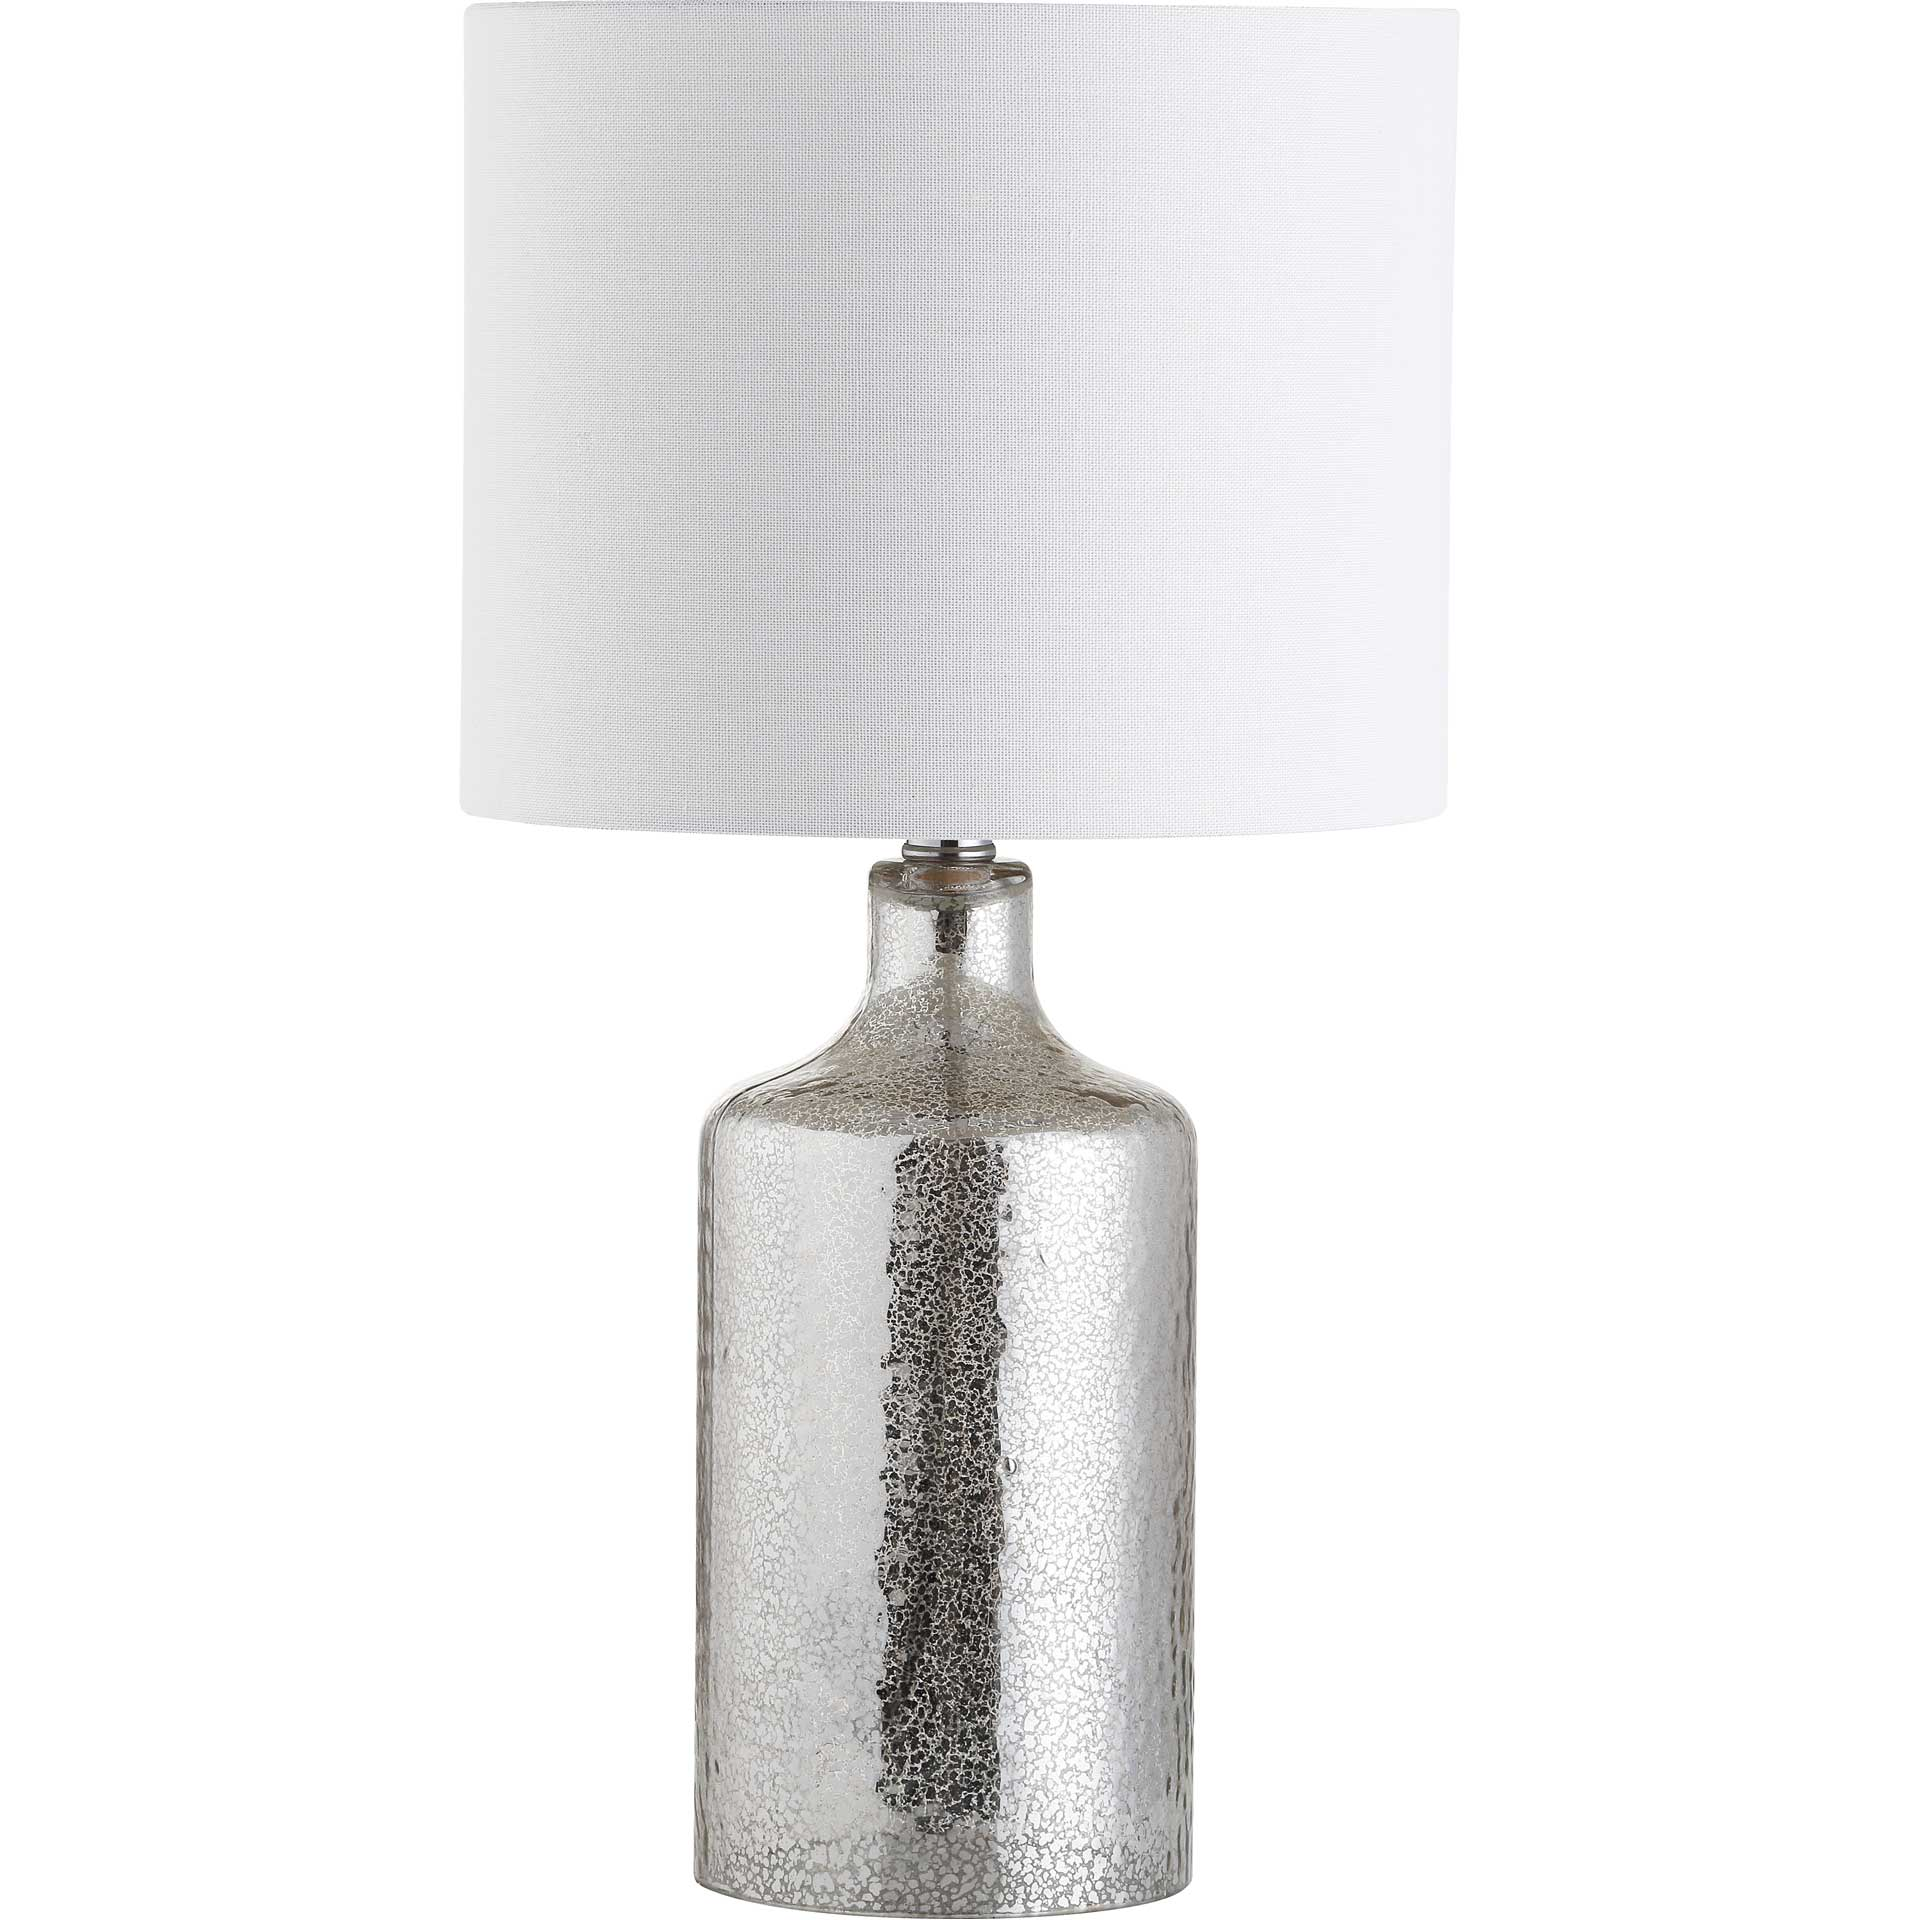 Dana Table Lamp Silver/Ivory